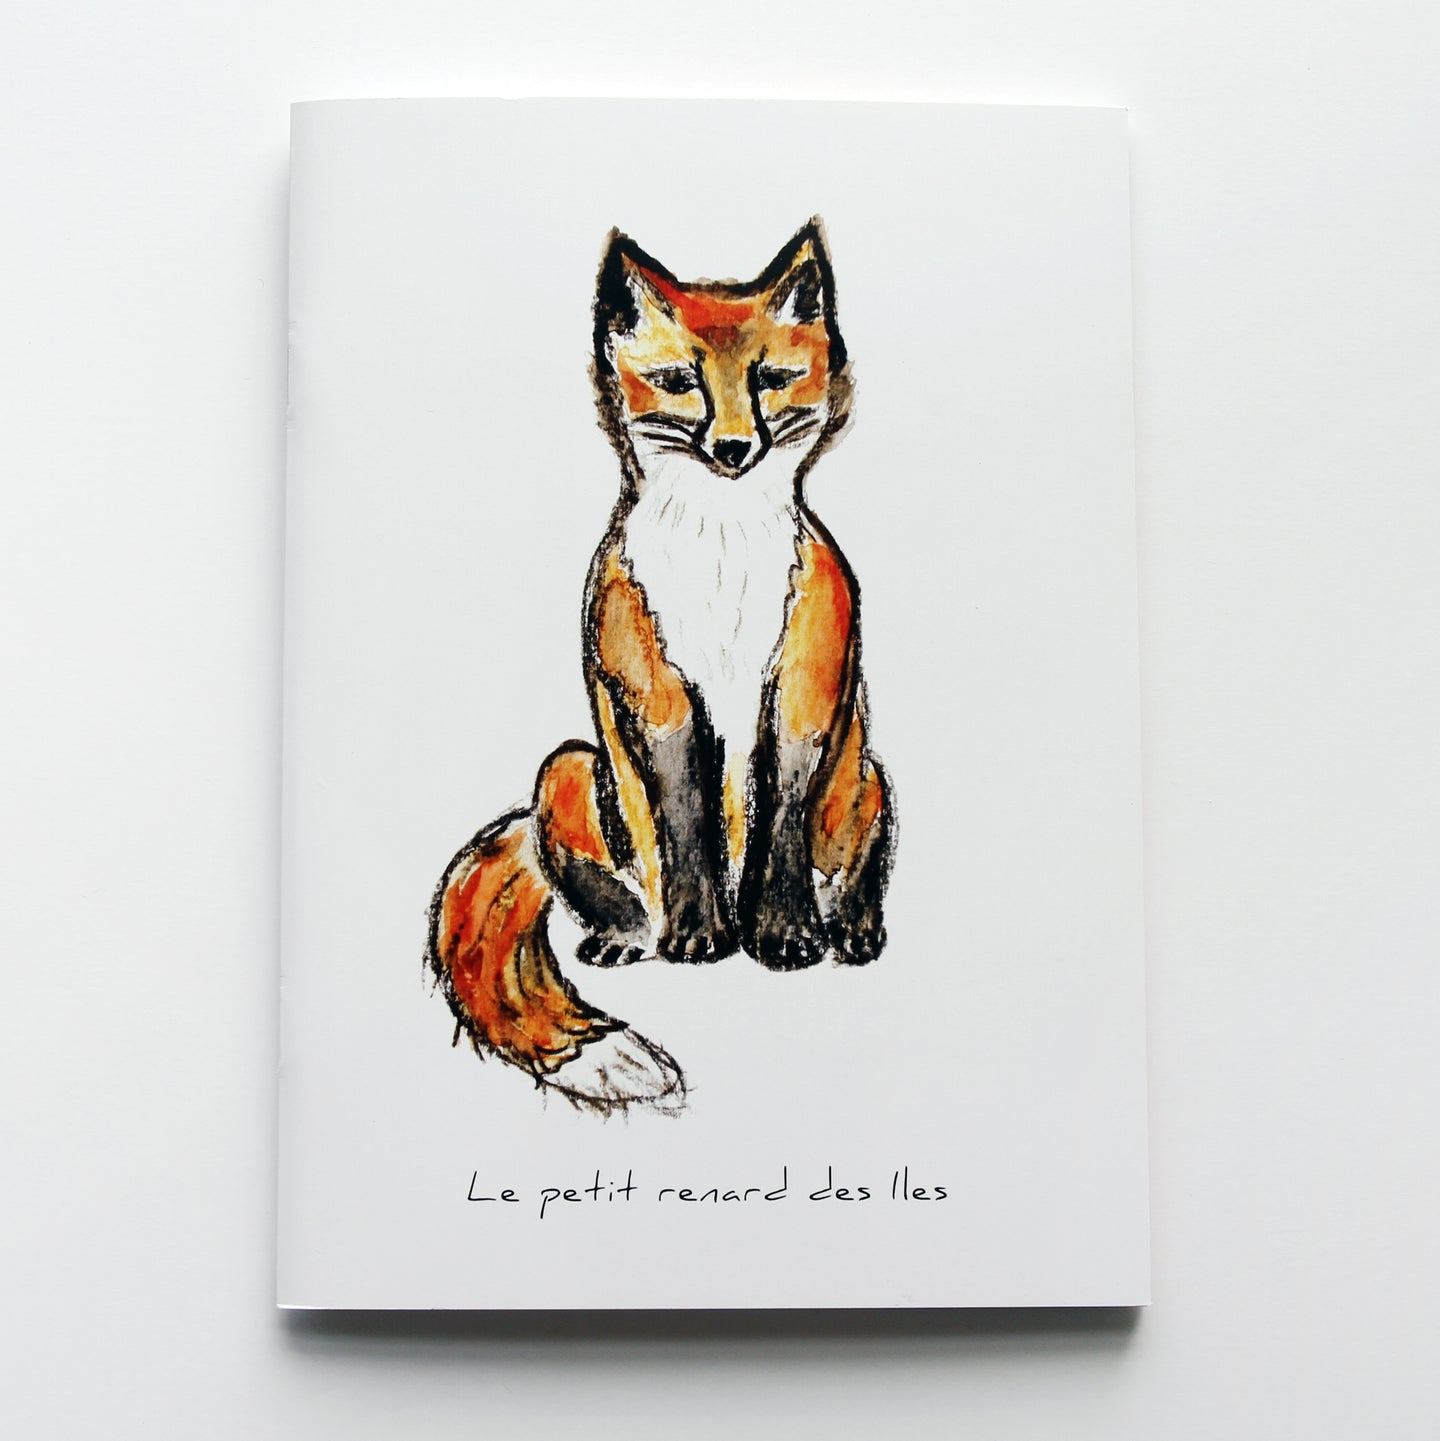 carnet de notes, carnet renard assis, notebook, fox illustration notebook, papeterie renard, fox illustration stationary